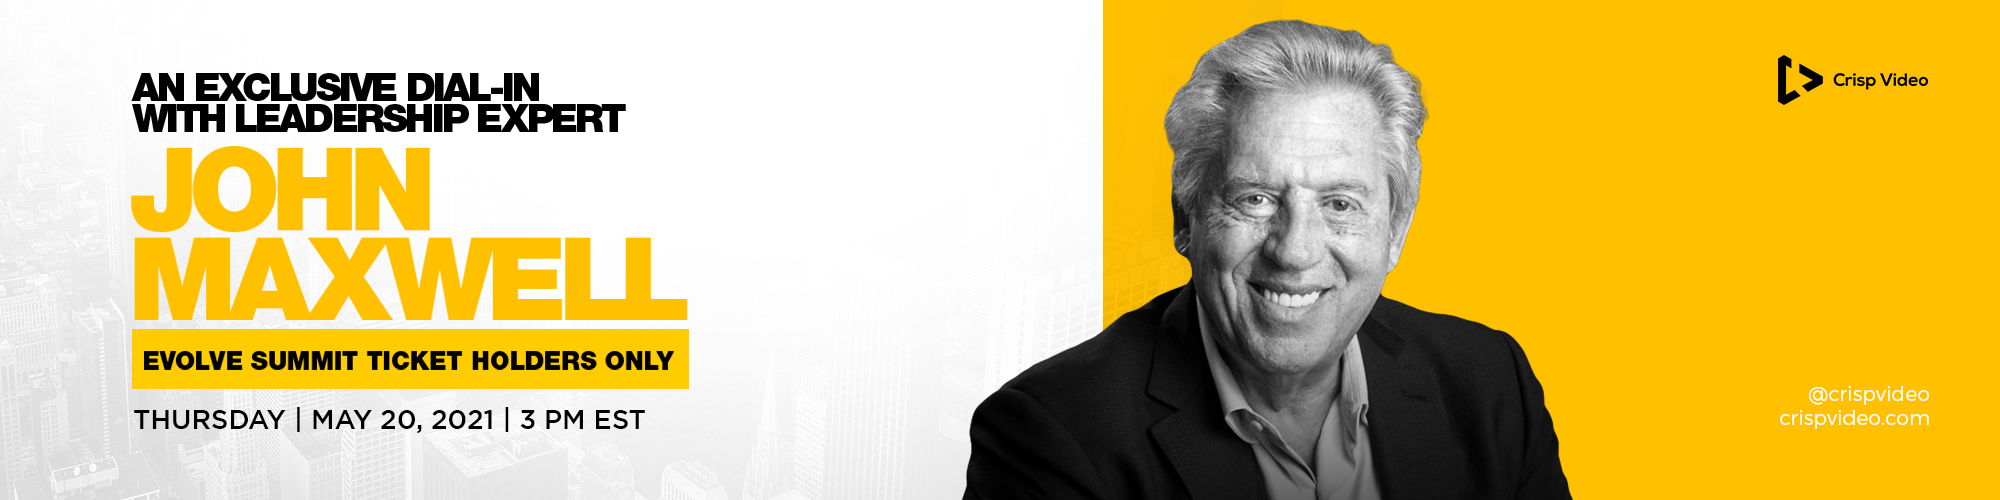 John Maxwell May 20th EVOLVE Summit exclusive dial-in